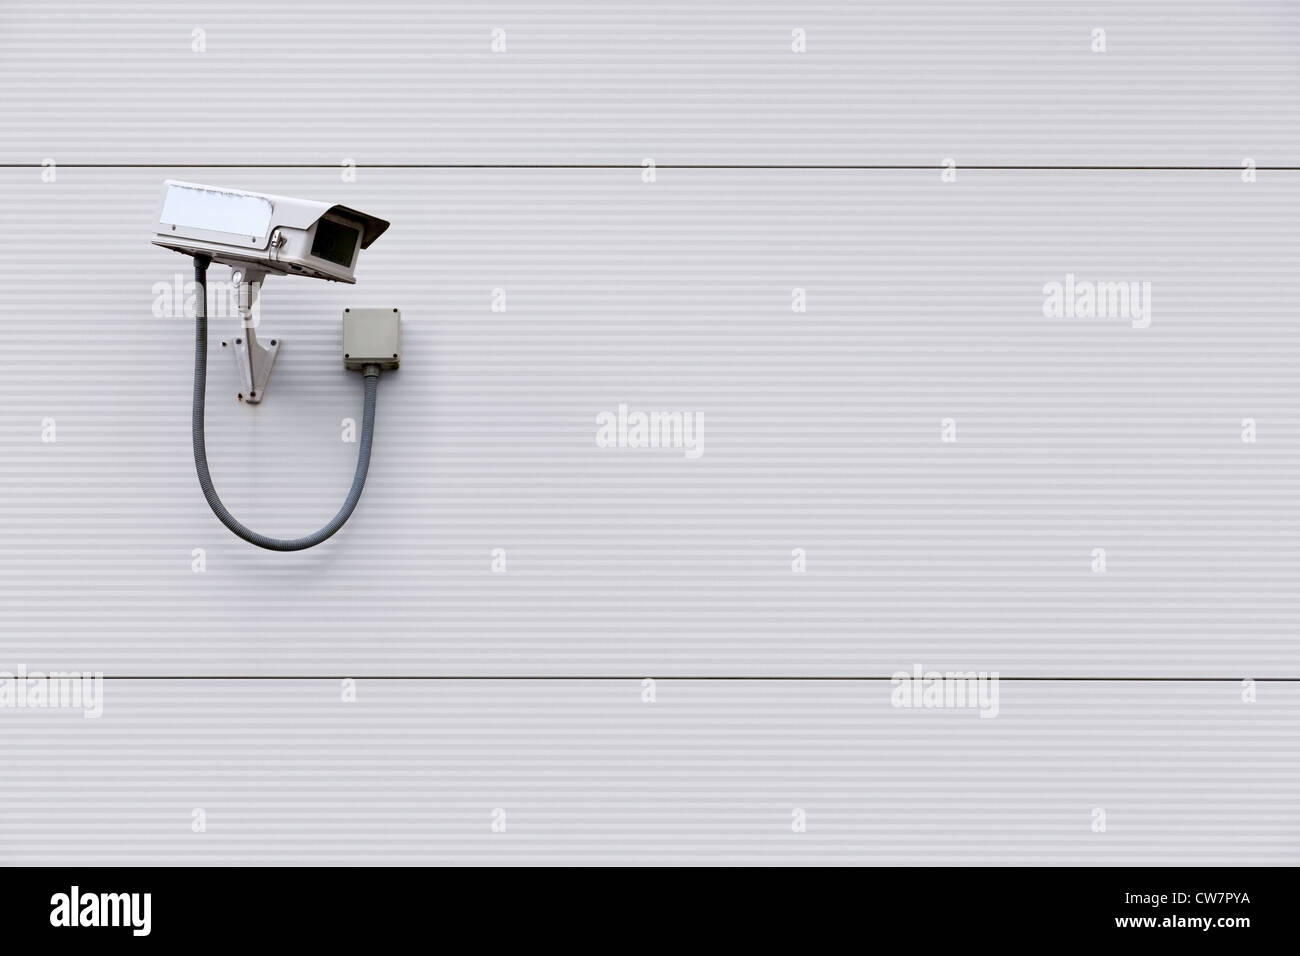 Photo of a CCTV security camera on the wall of a building with copy space for text. - Stock Image